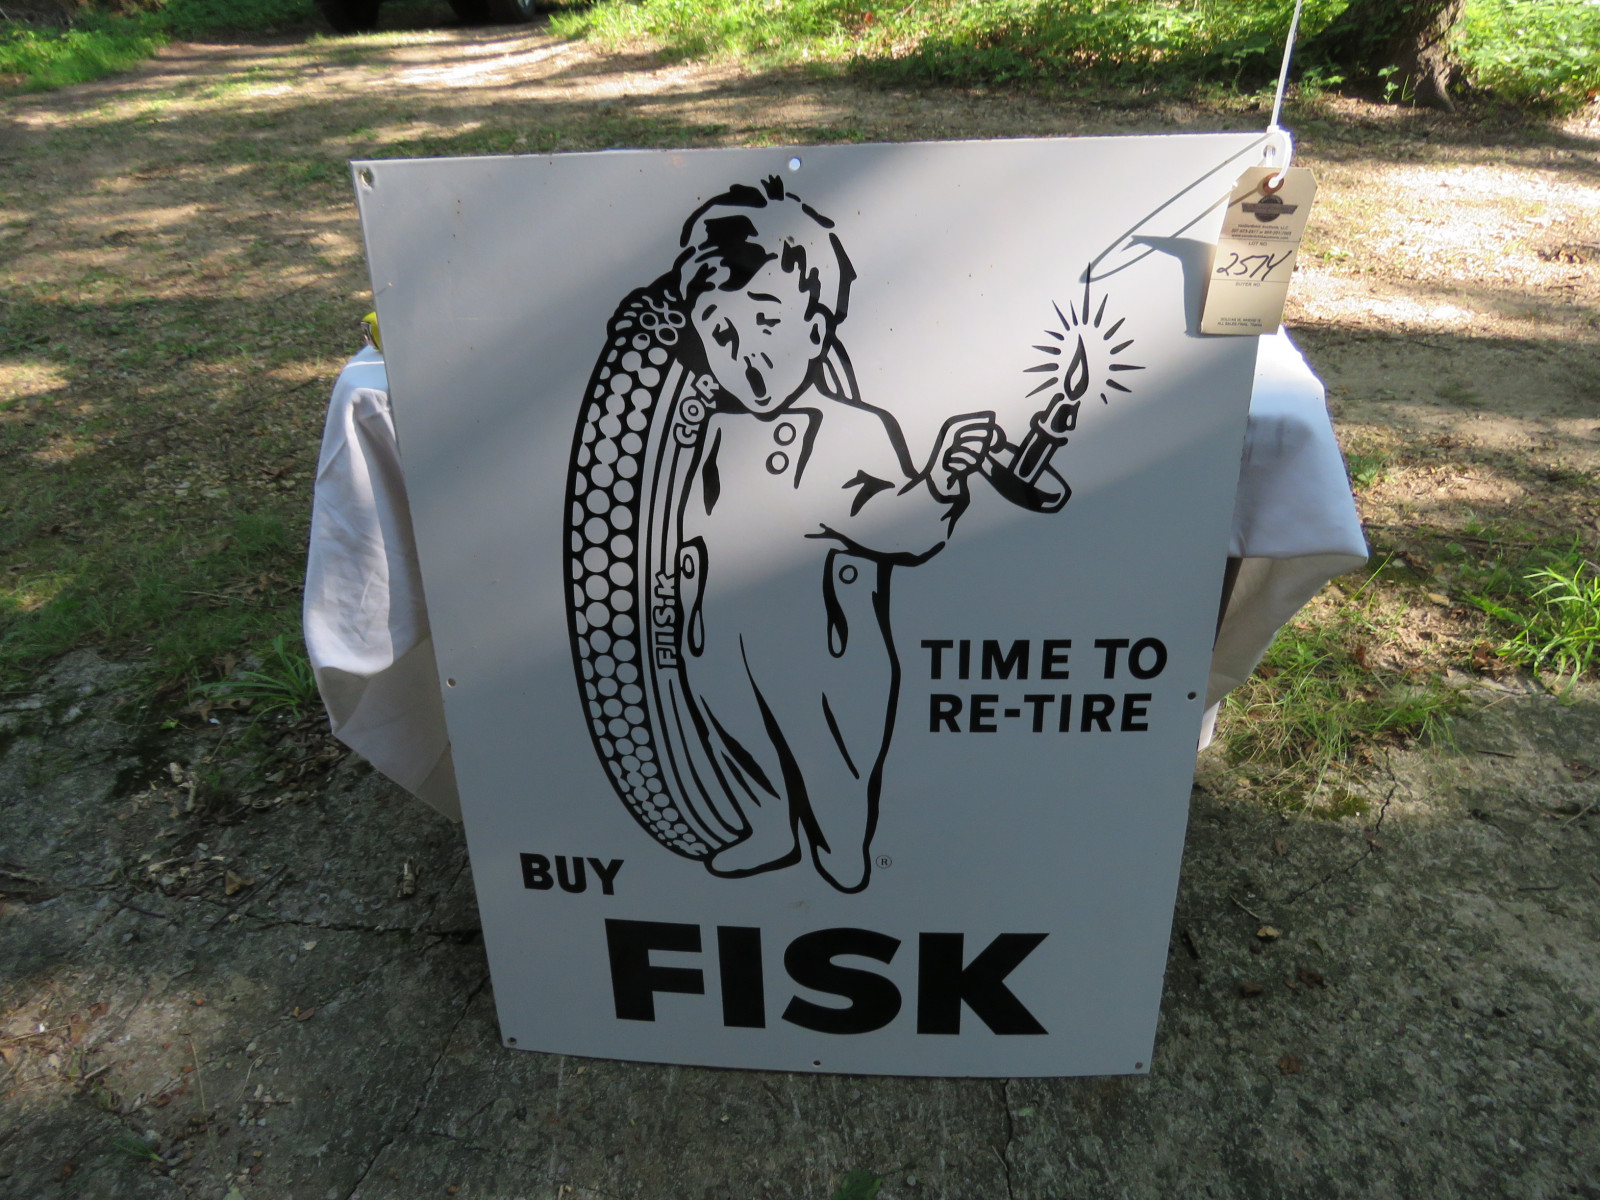 RARE NOS Fisk Tires SS Porcelain Sign 29X36 inches - Image 1